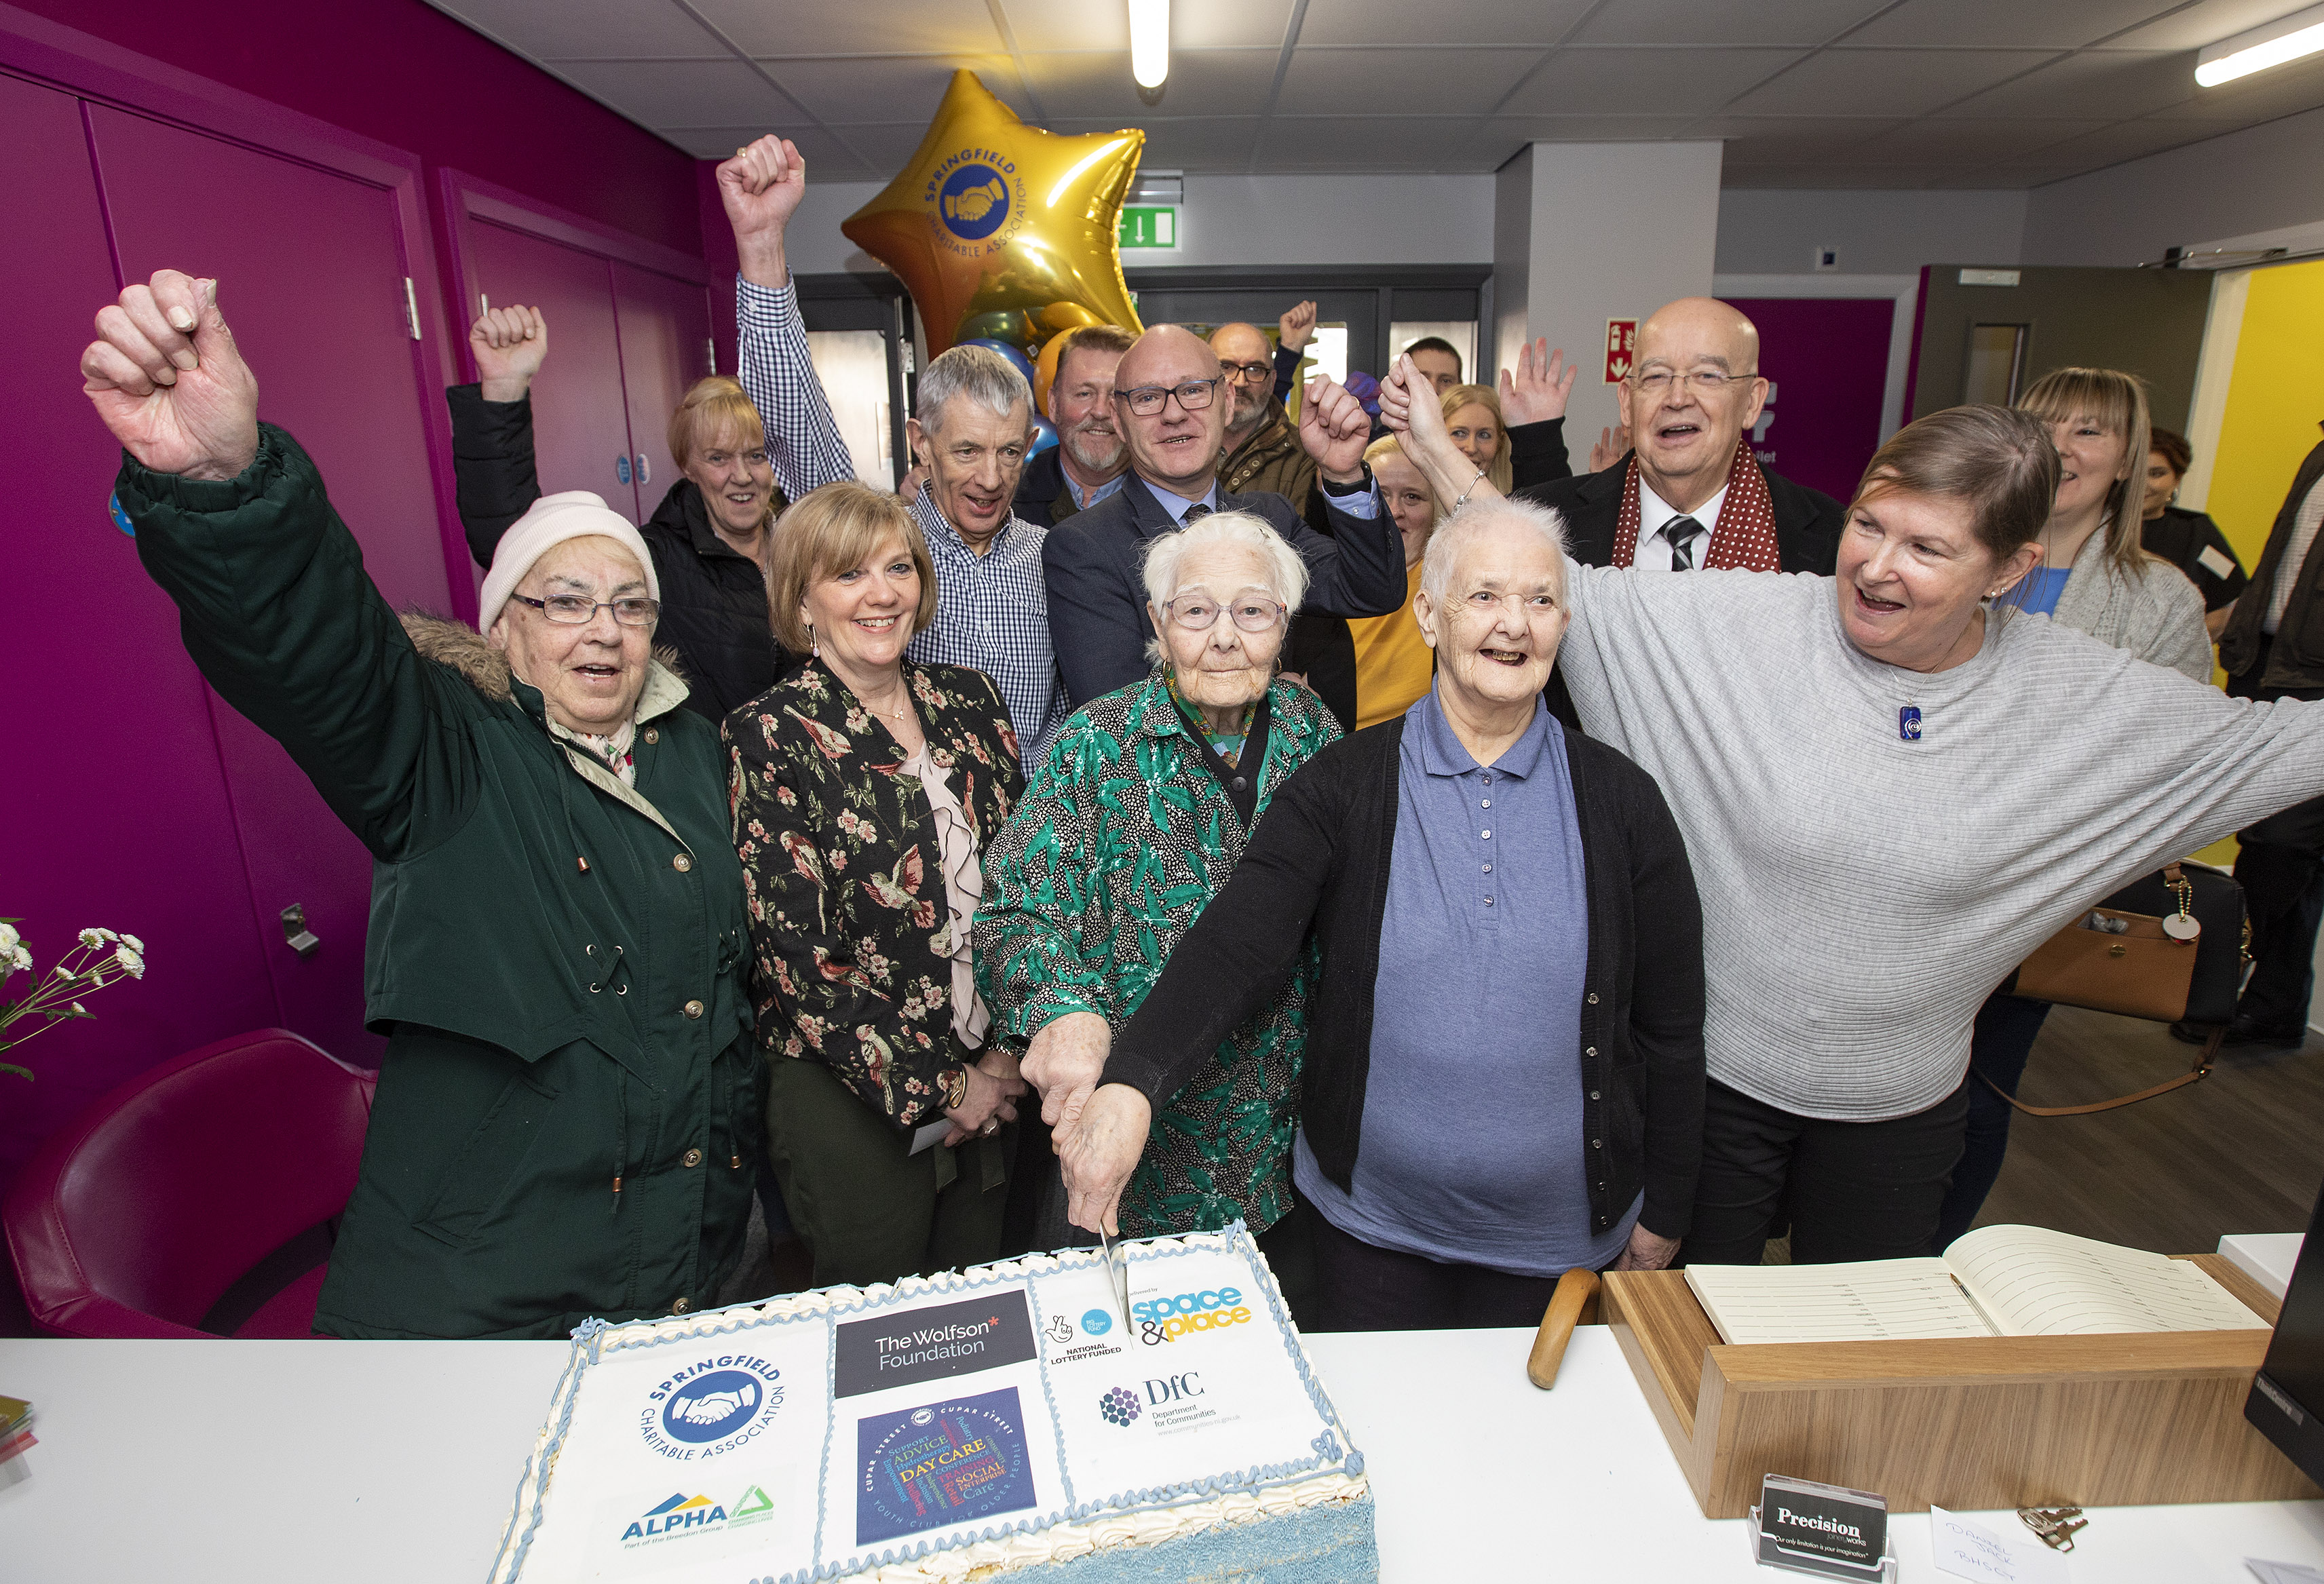 Youth Club for Older People opens in West Belfast